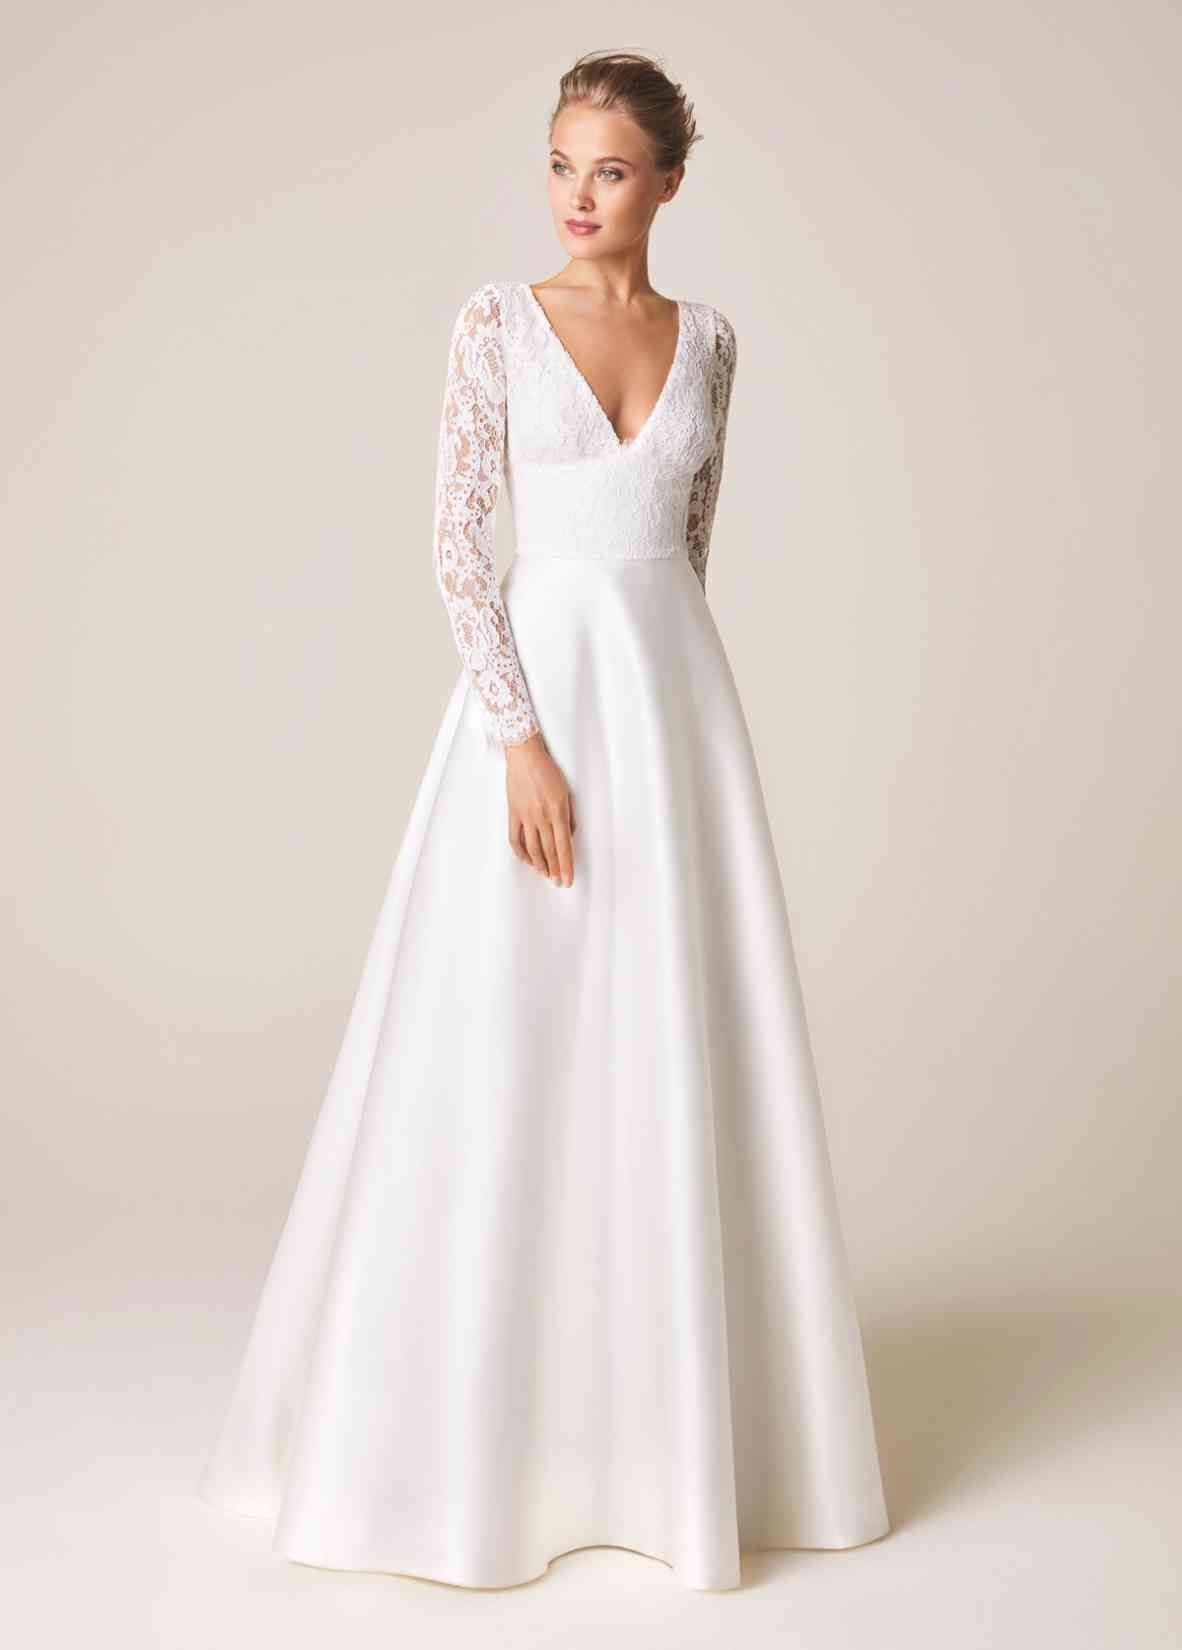 12 Luxury Couture Bridal Fashion Brands You Need To Know About In 2020 Wedding Dresses Old Wedding Dresses Grace Kelly Wedding Dress